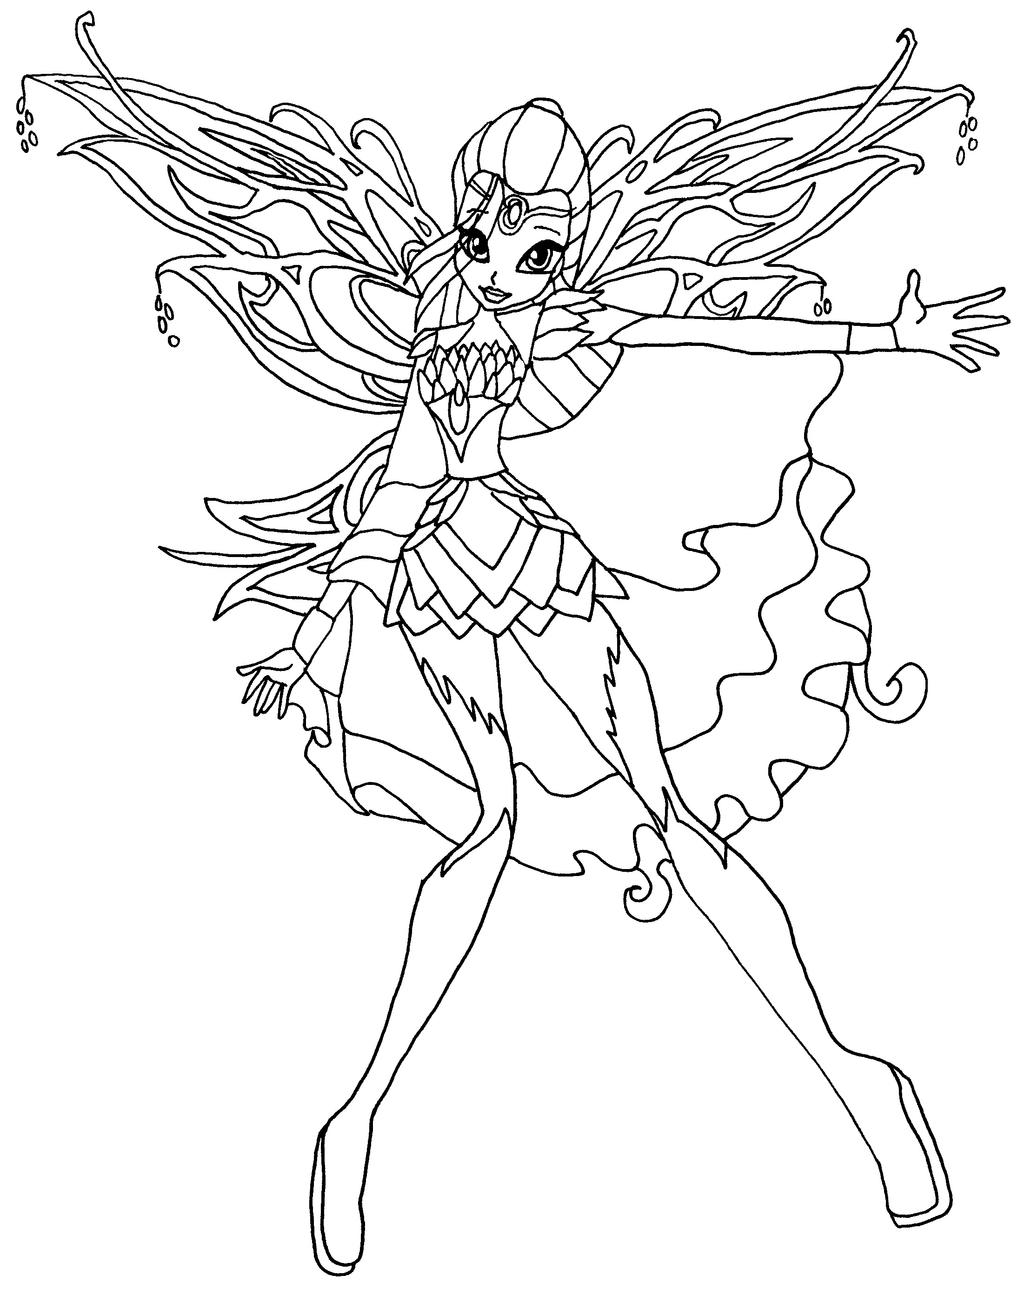 winx club coloring pages bloom winx bloom coloring pages coloring pages bloom club pages winx coloring